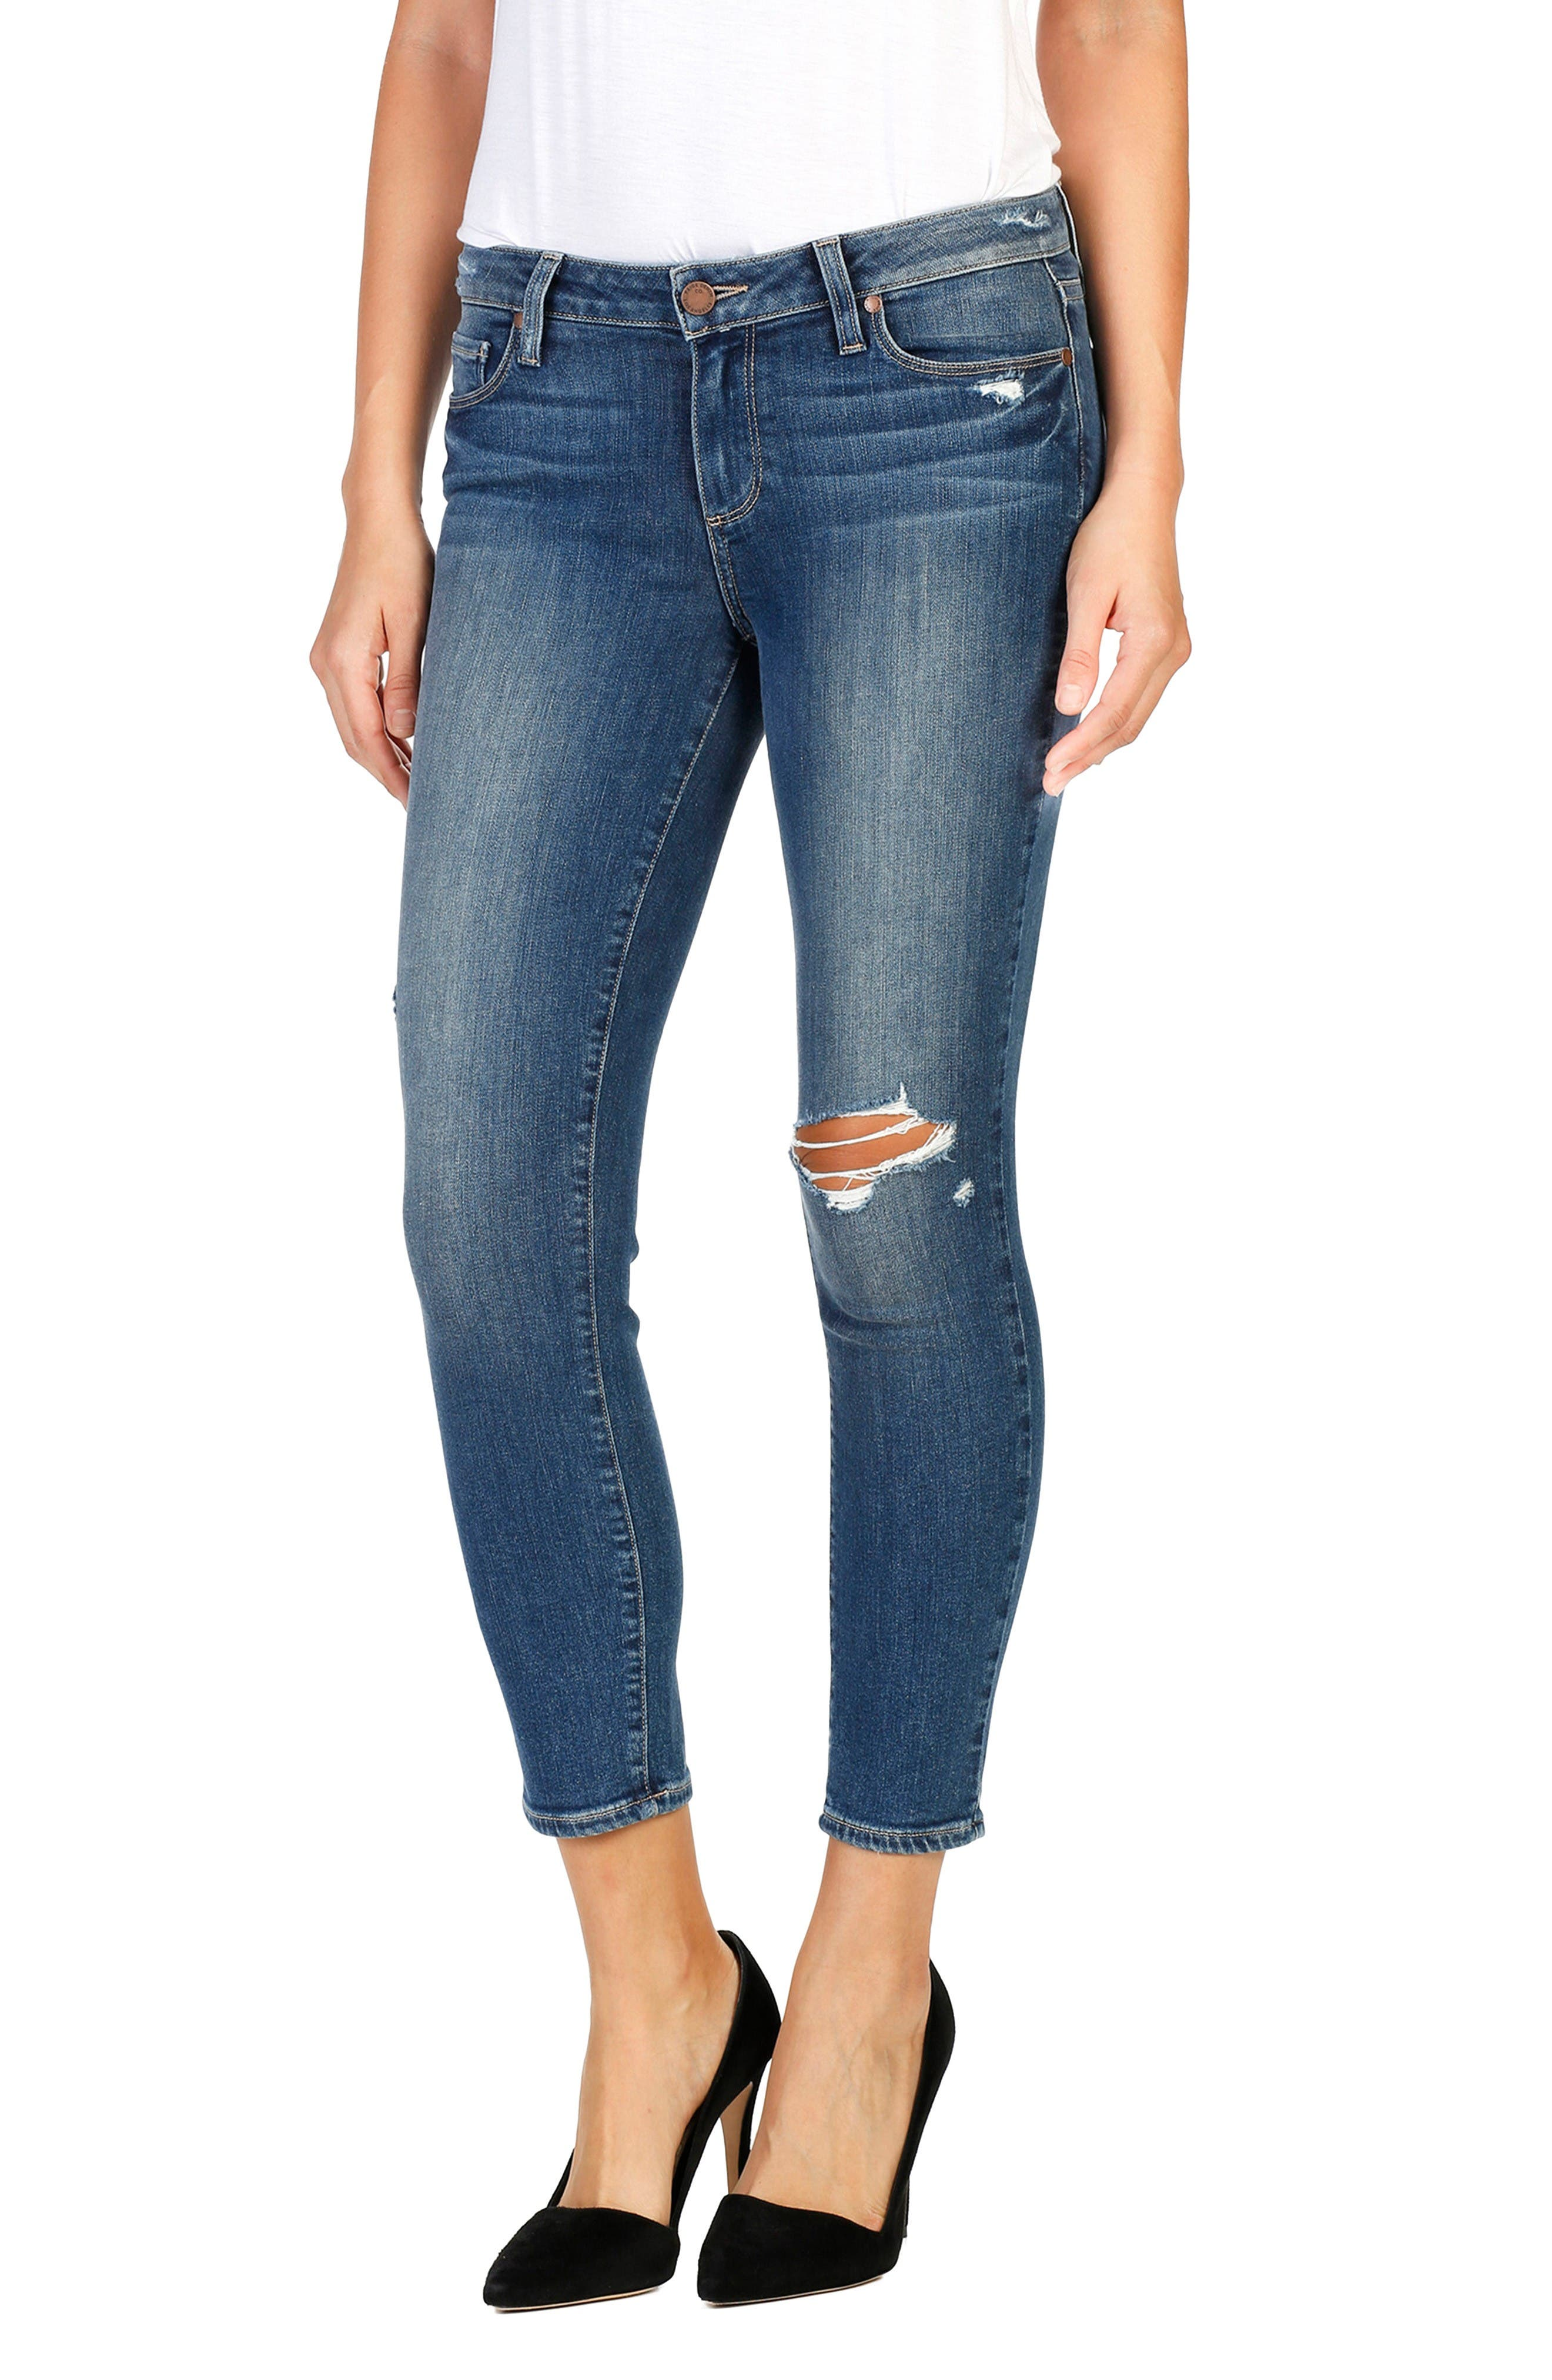 Verdugo Crop Skinny Jeans,                         Main,                         color, Ramona Destructed